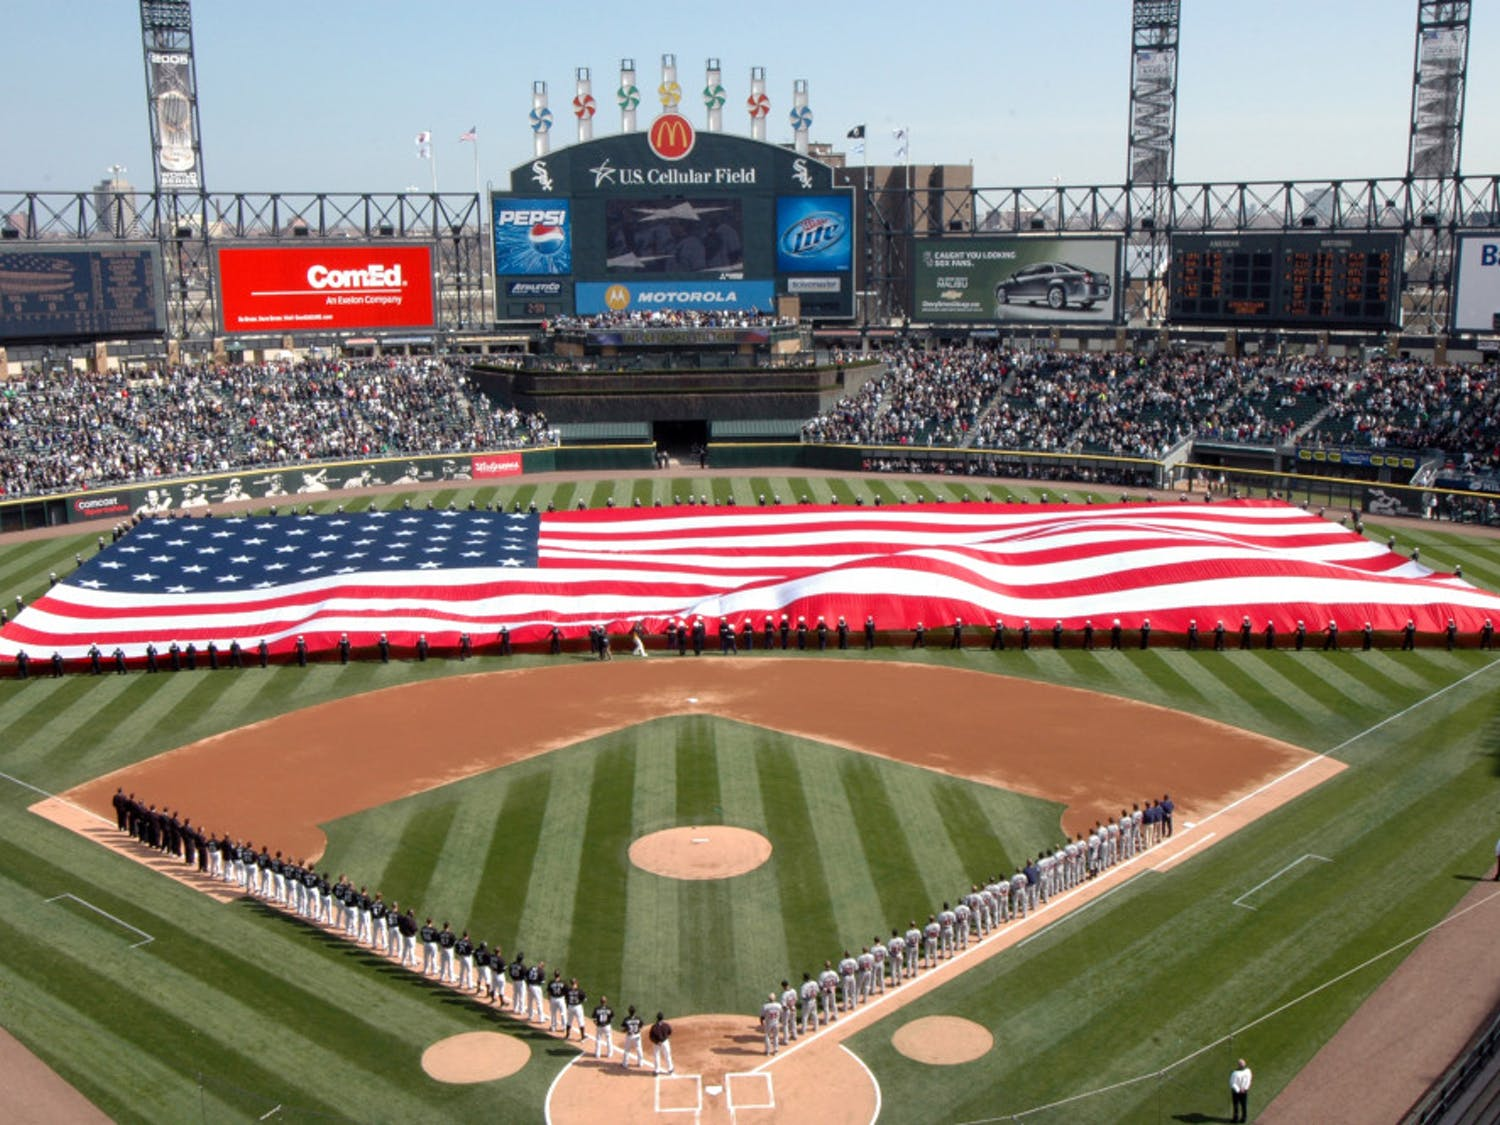 More than 100 U.S. Sailors from Navy Region Midwest, Navy Recruiting Chicago and Naval Station Great Lakes hold an American Flag during the National Anthem at opening day ceremonies for the Chicago White Sox Major League Baseball team at U.S. Cellular Field, Chicago, Ill., April 7, 2008. Great Lakes Sailors have participated in the White Sox opening day for the past six years. (U.S. Navy photo by Scott A. Thornbloom/Released)